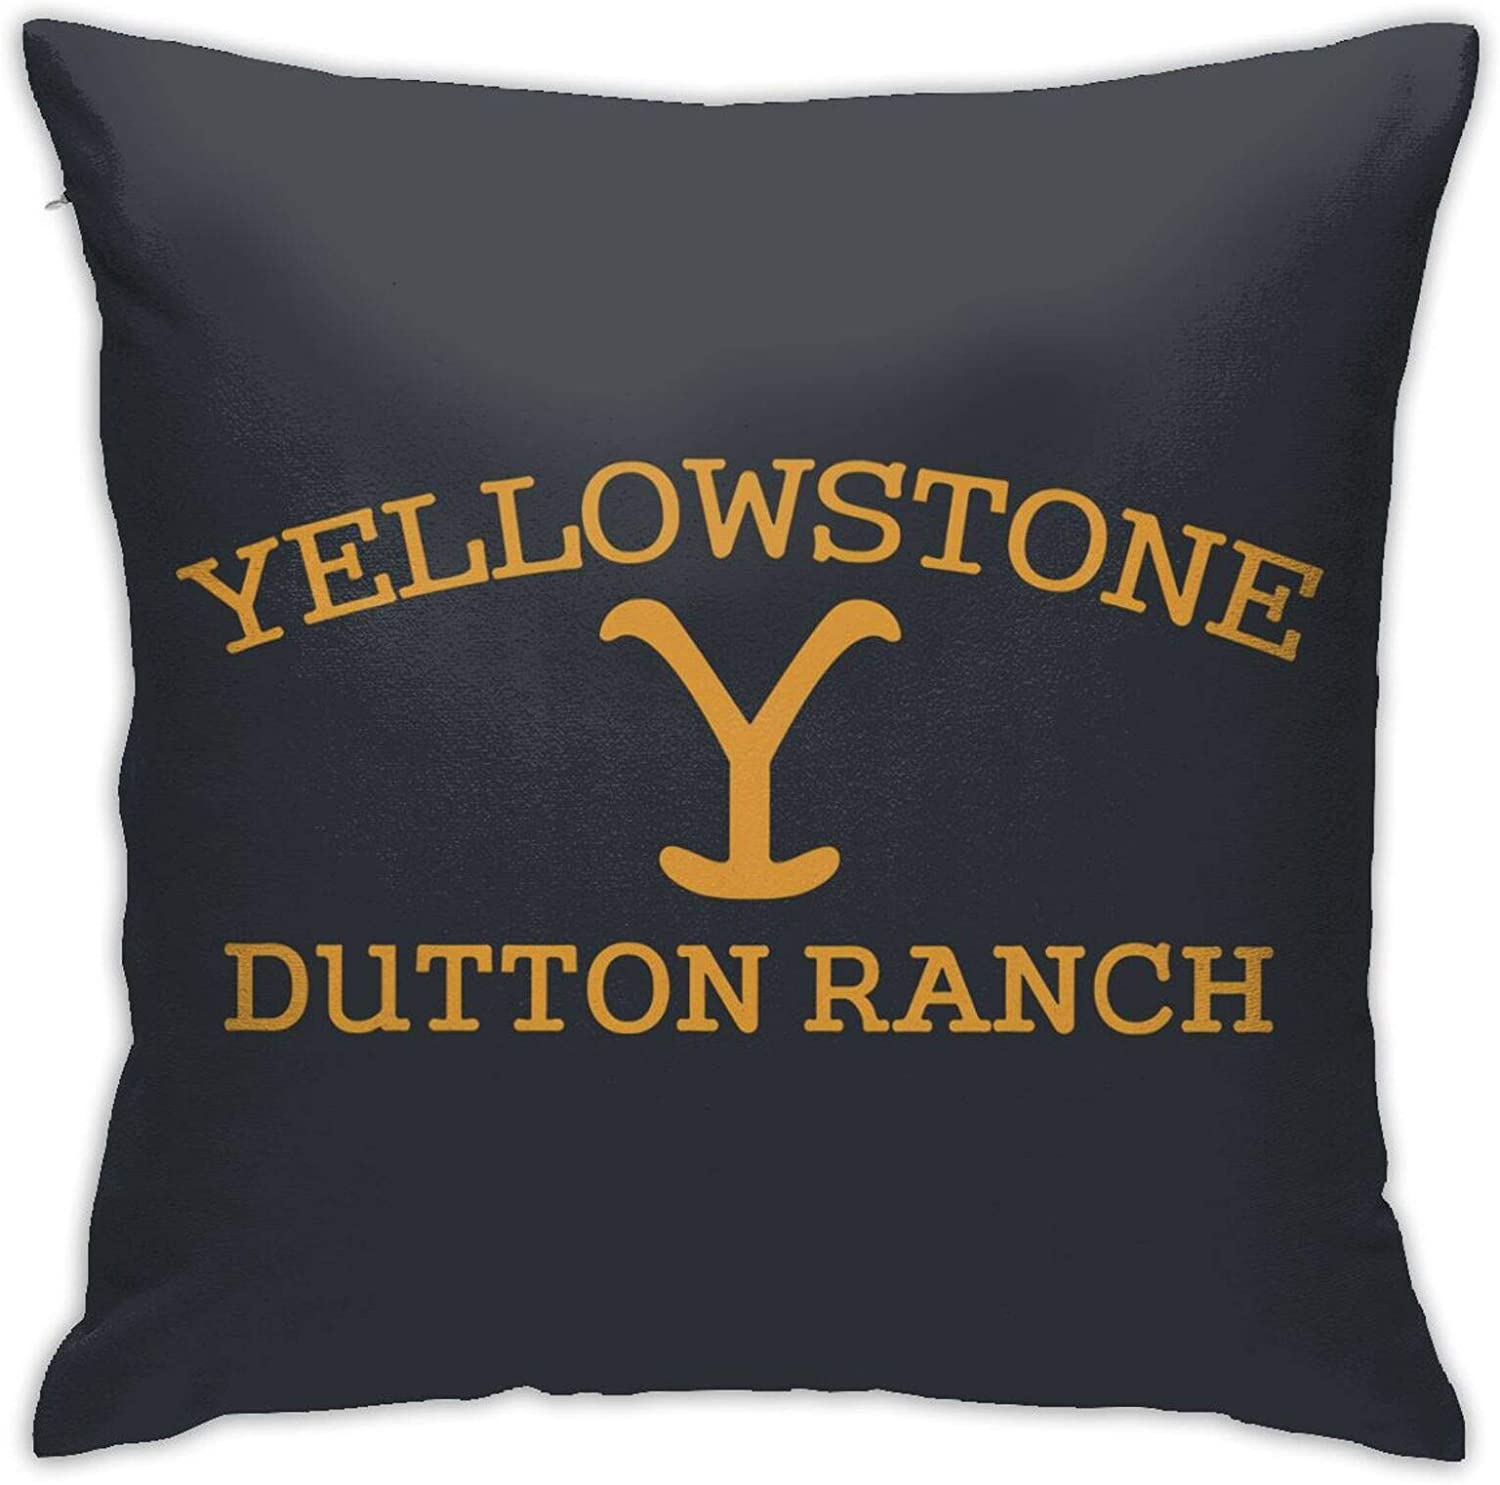 Yellowstone Dutton Ranch Home Decor Pillowcase Soft Plush Fabric Pillow Cushion Chair Cushion for Living Room Bedroom 18 X 18 Inch